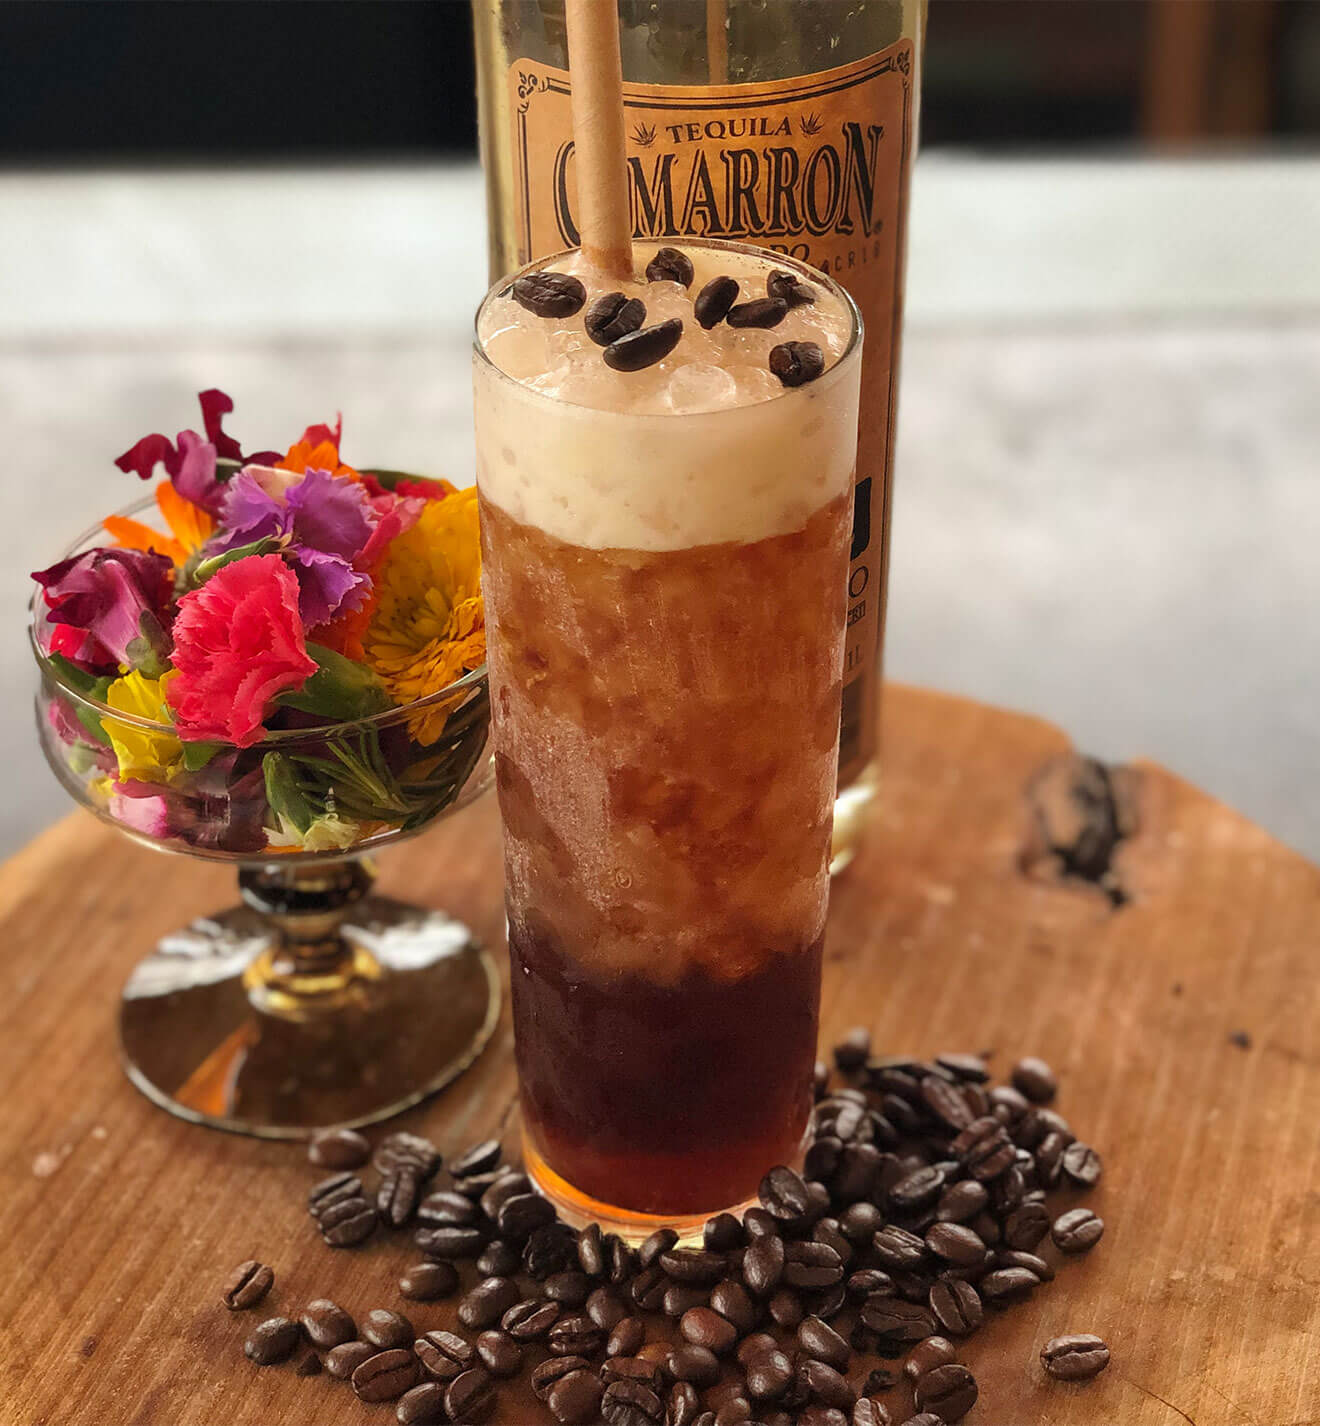 Cold Brew Carajillo, cocktail and bottle on serving tray